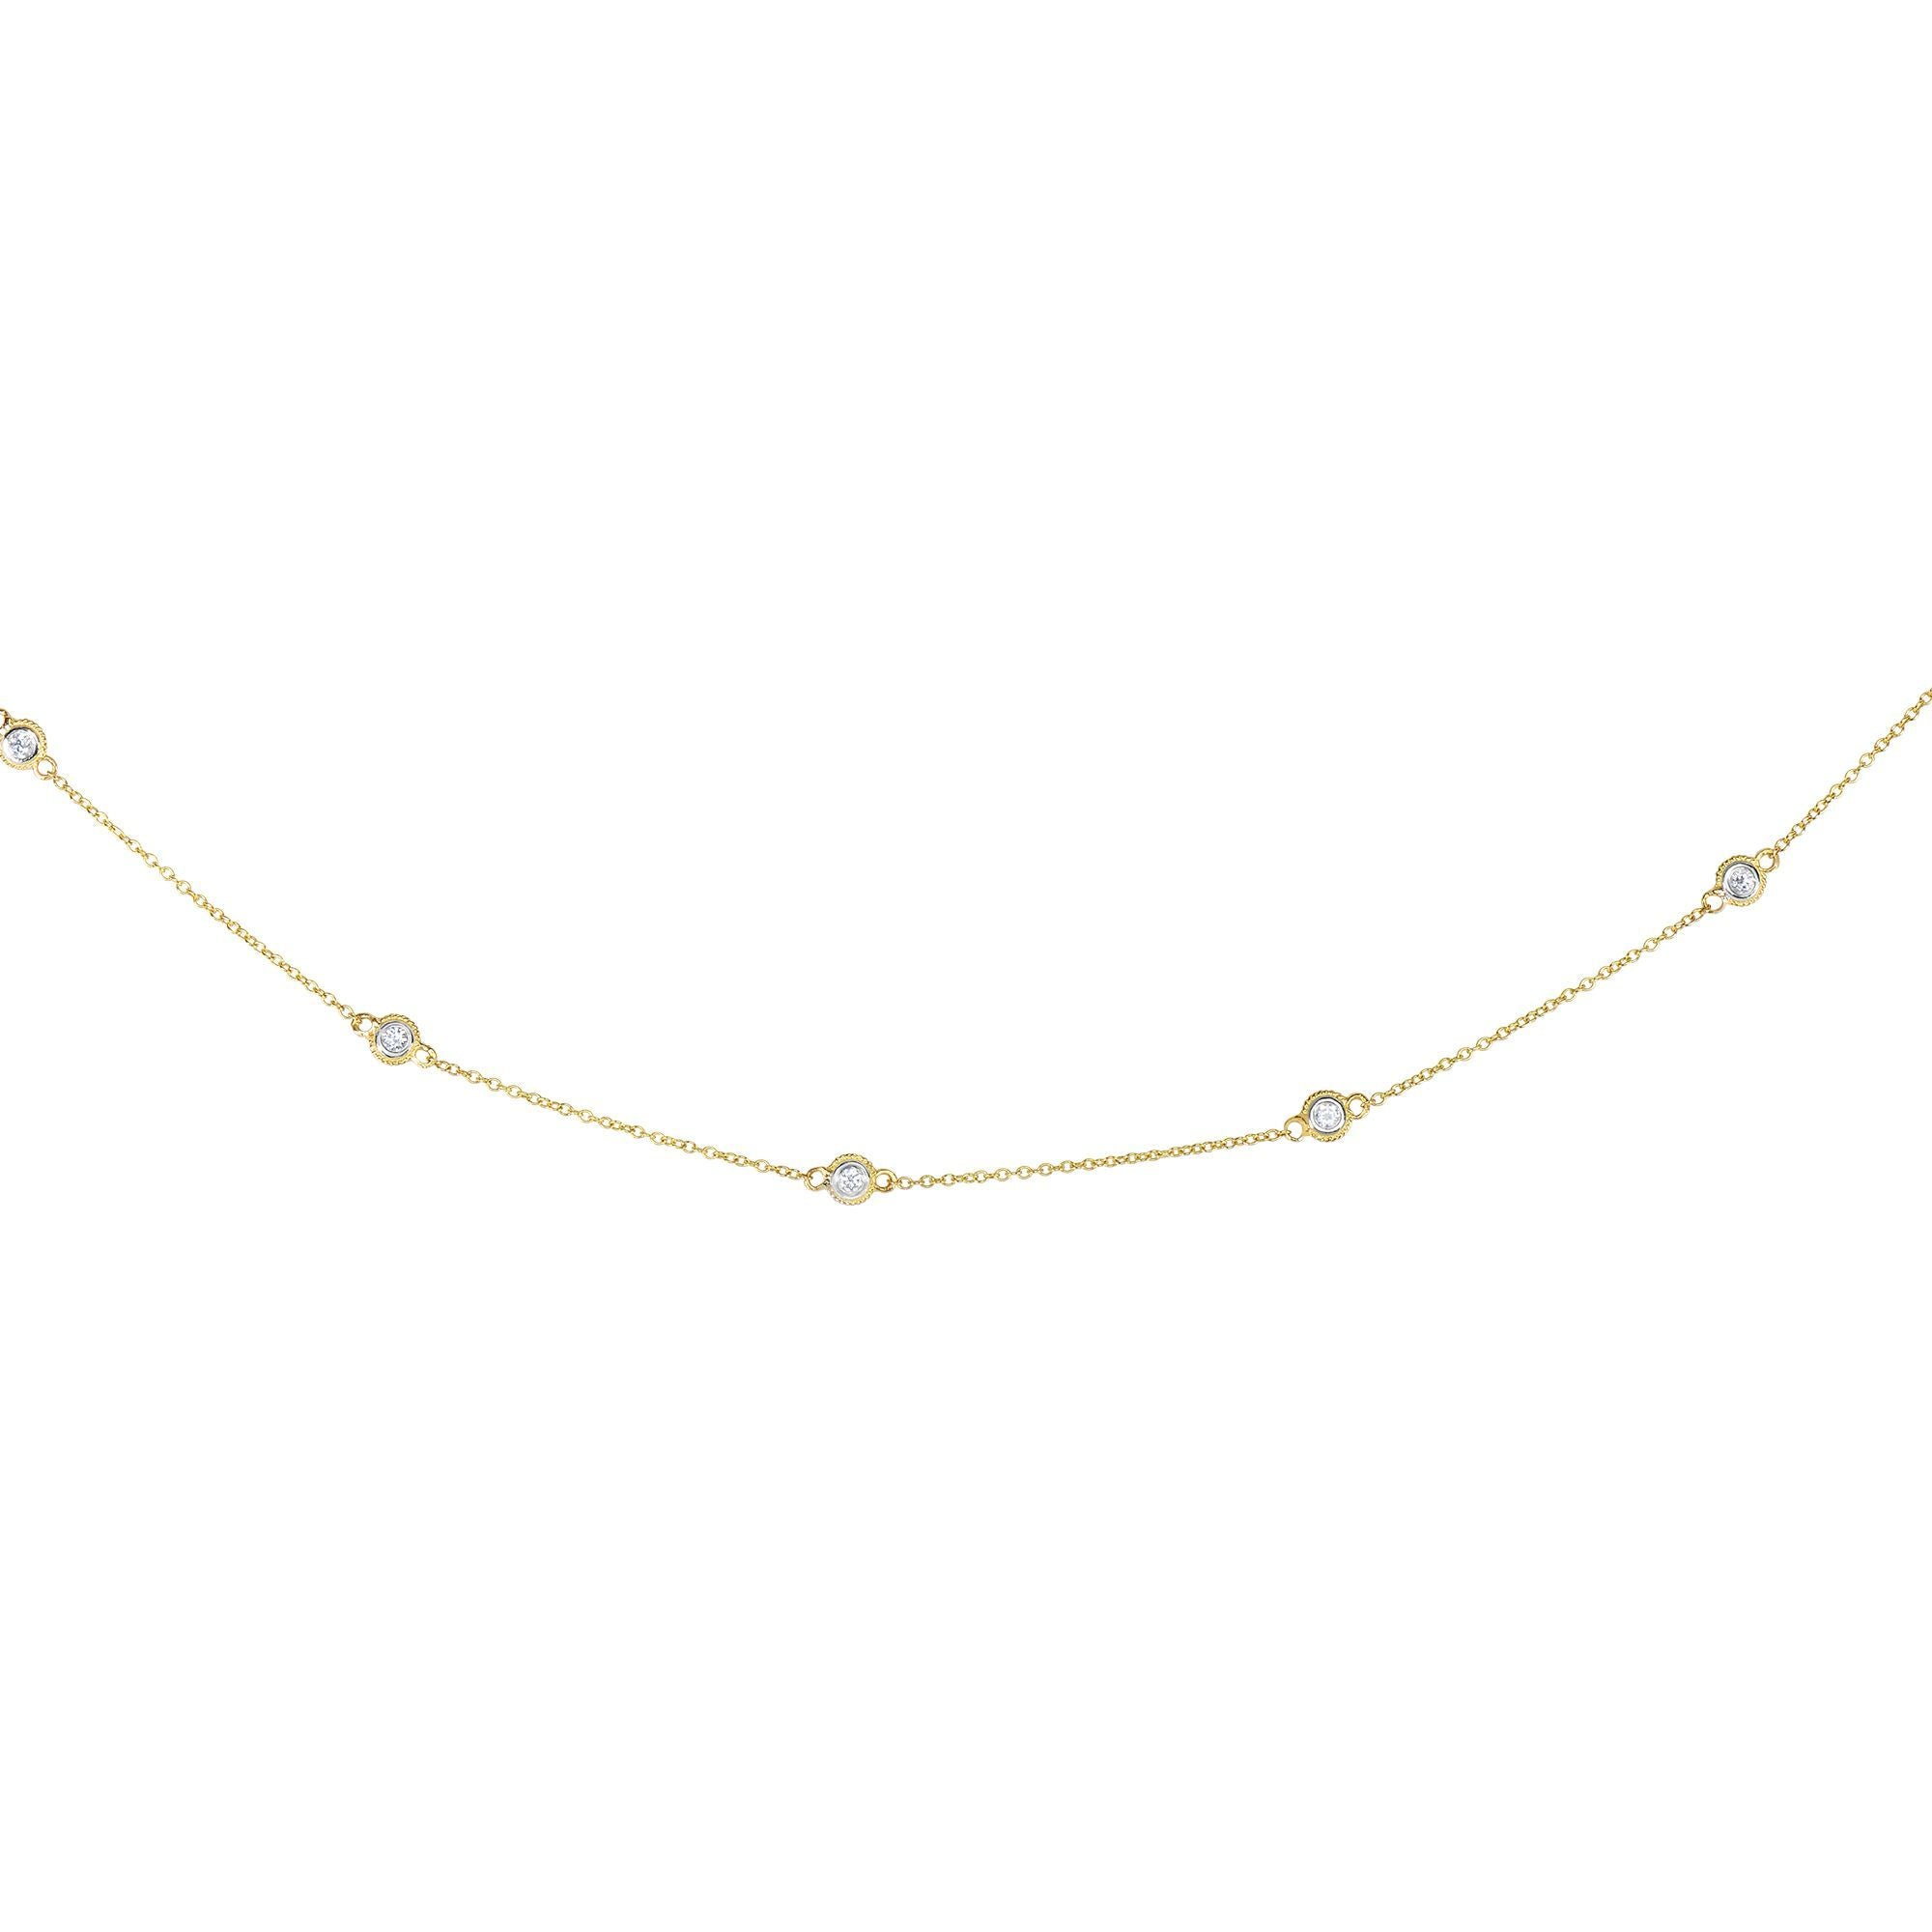 5 Station Diamonds by the Yard Necklace, .25ctw